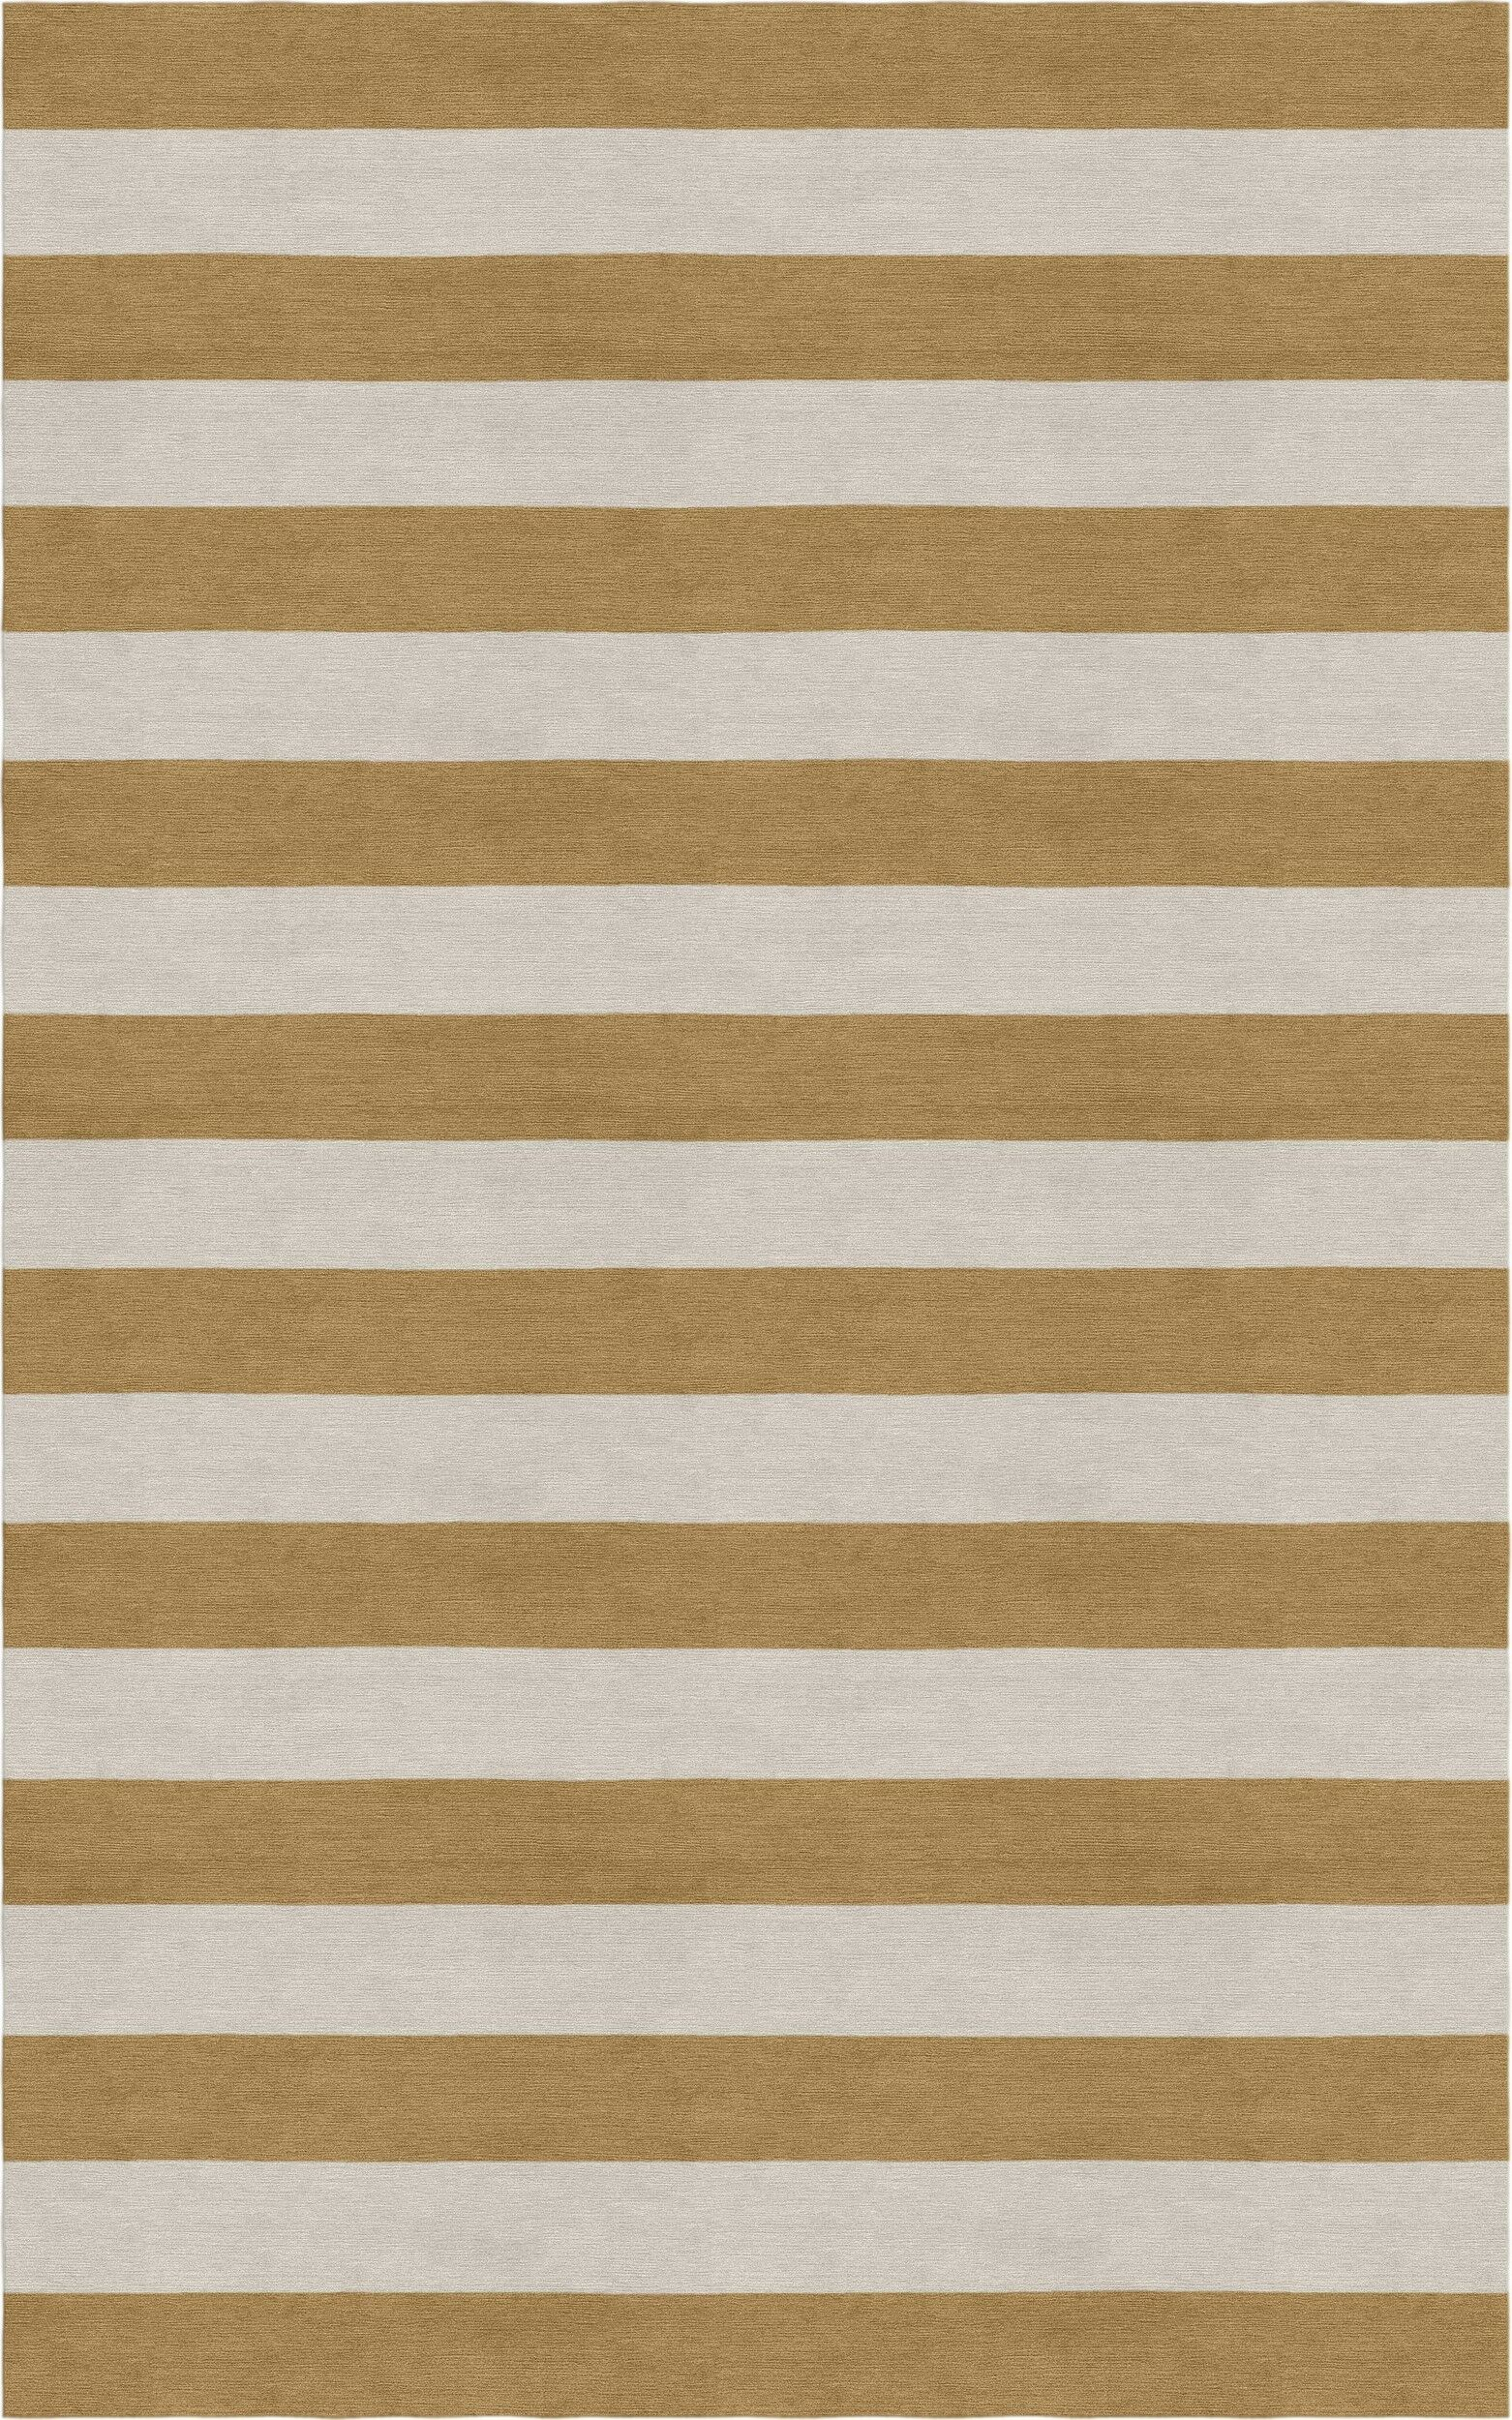 Chace Hand Tufted Wool Silver/Camel Stripe Area Rug Rug Size: Rectangle 9' x 12'